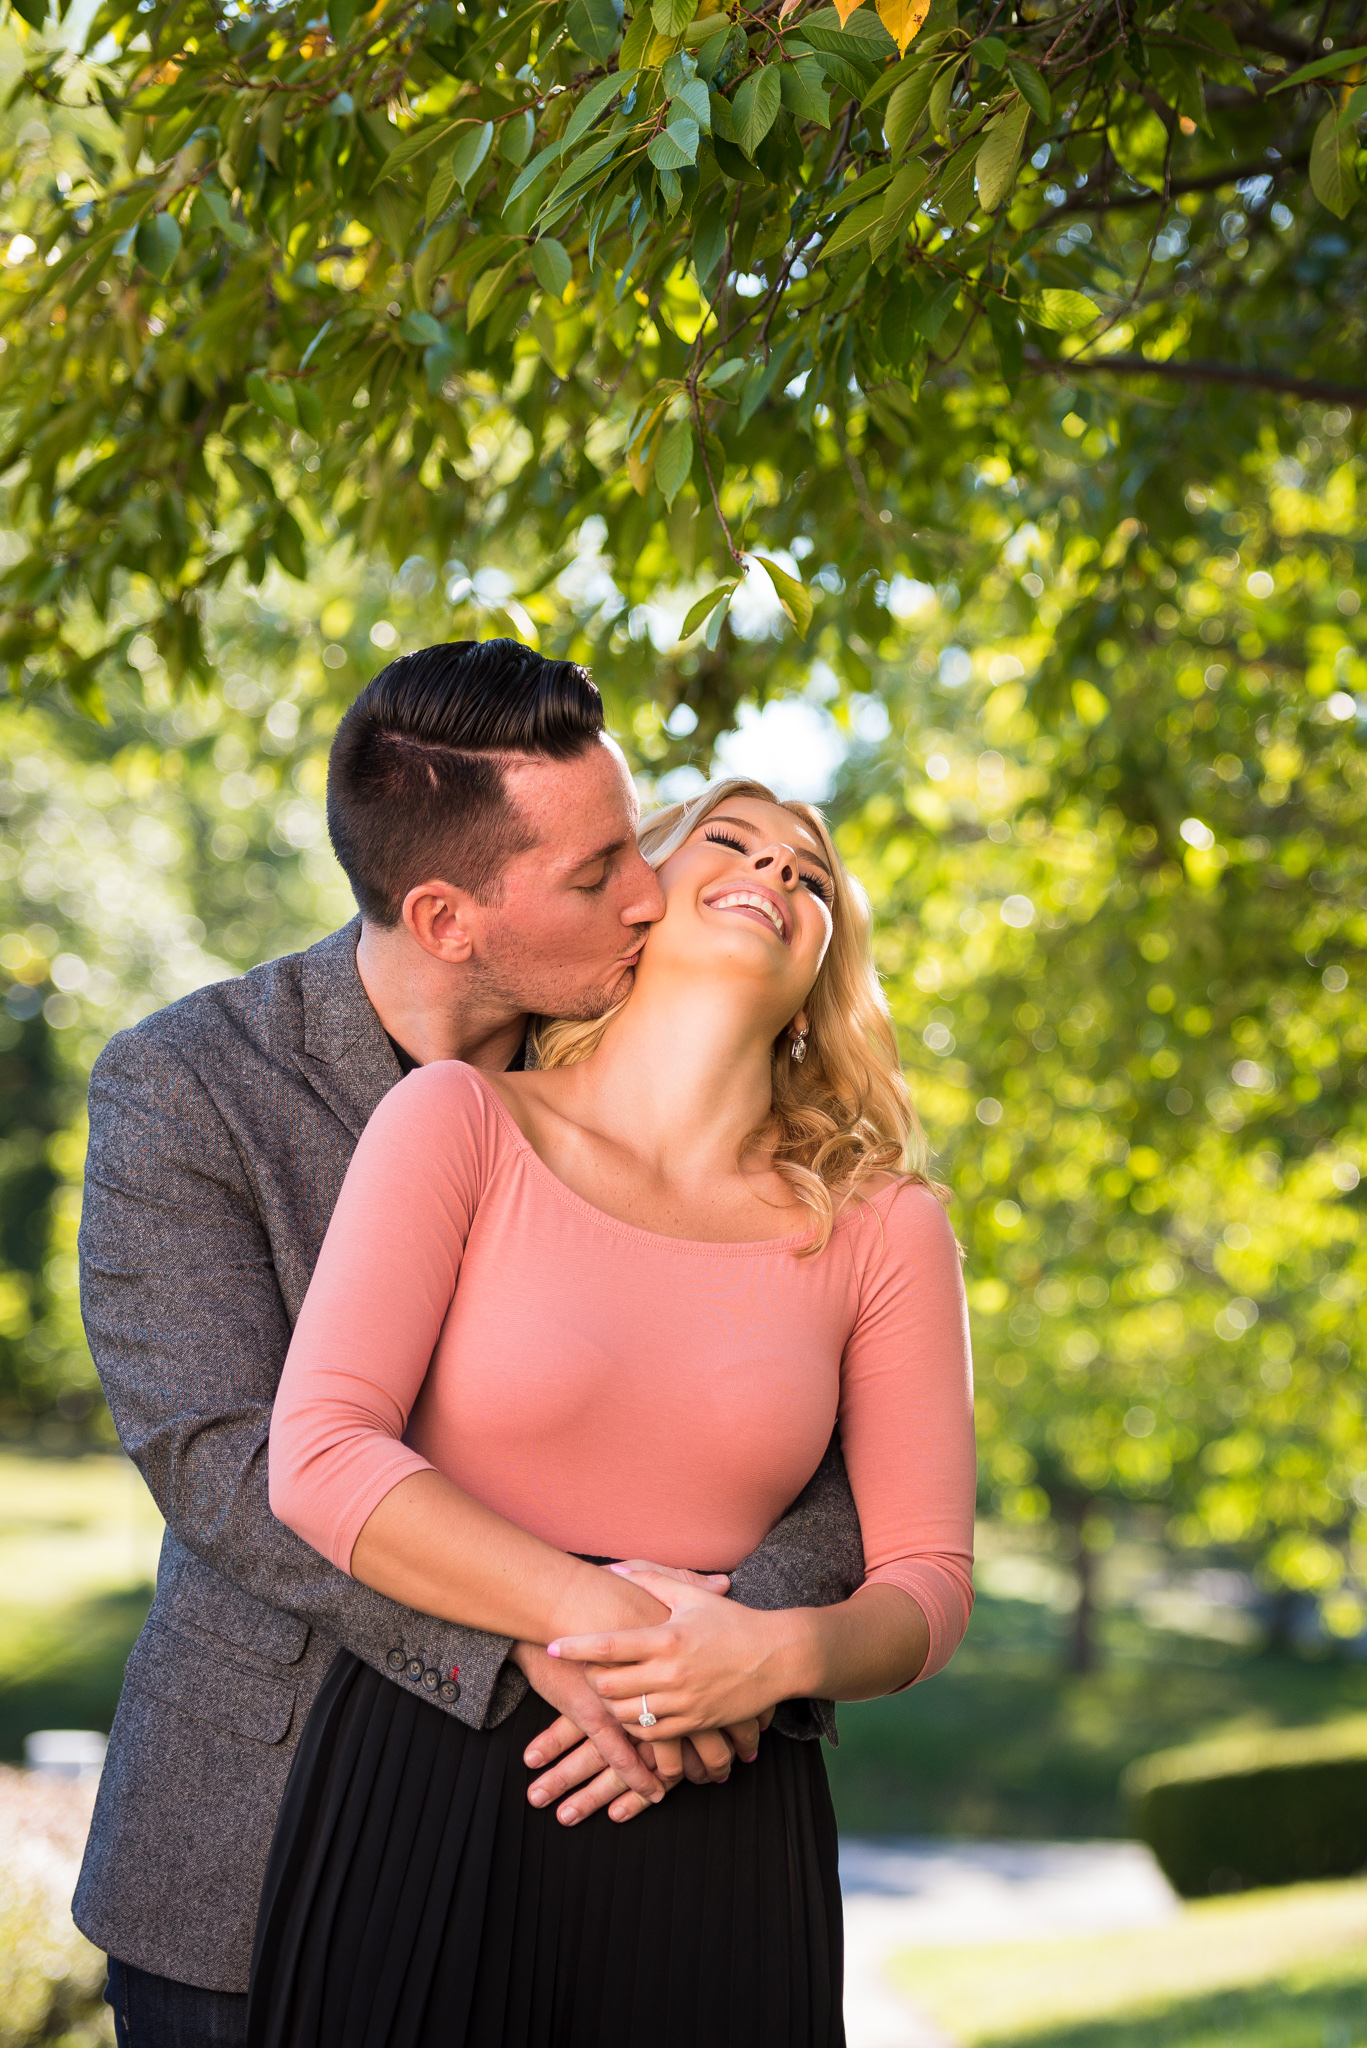 Mindy-Engagement-photography-wedding-photographer-northeast-PA-Scranton-Poconos-5.jpg